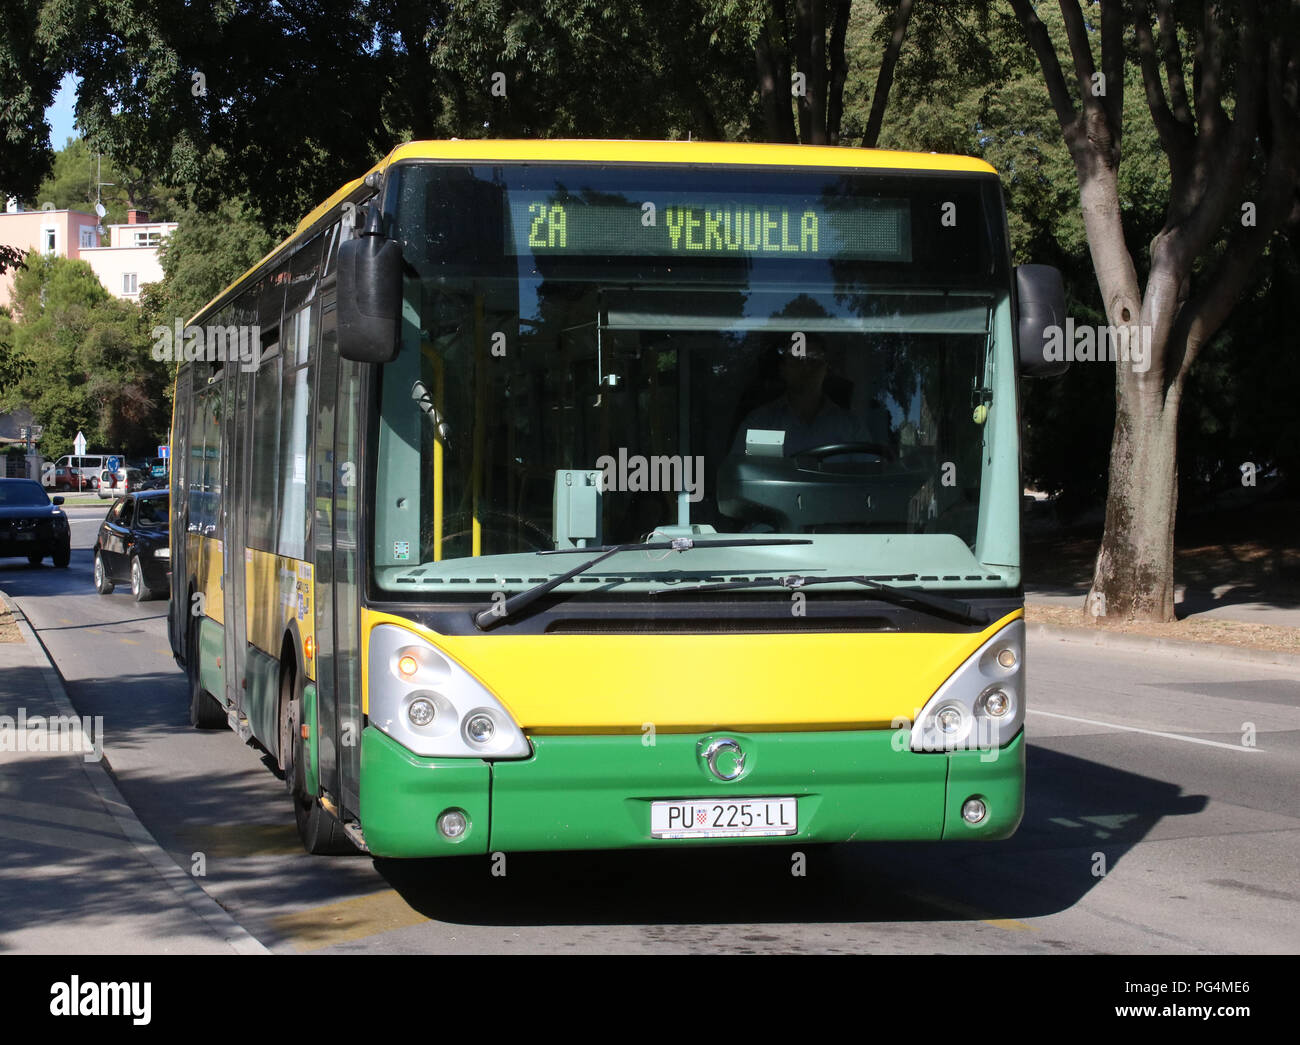 Single Deck Bus In Green And Yellow Livery Operated By Pulapromet On A Street In Pula Croatia With A Local Bus Service Number 2a In August 2018 Stock Photo Alamy